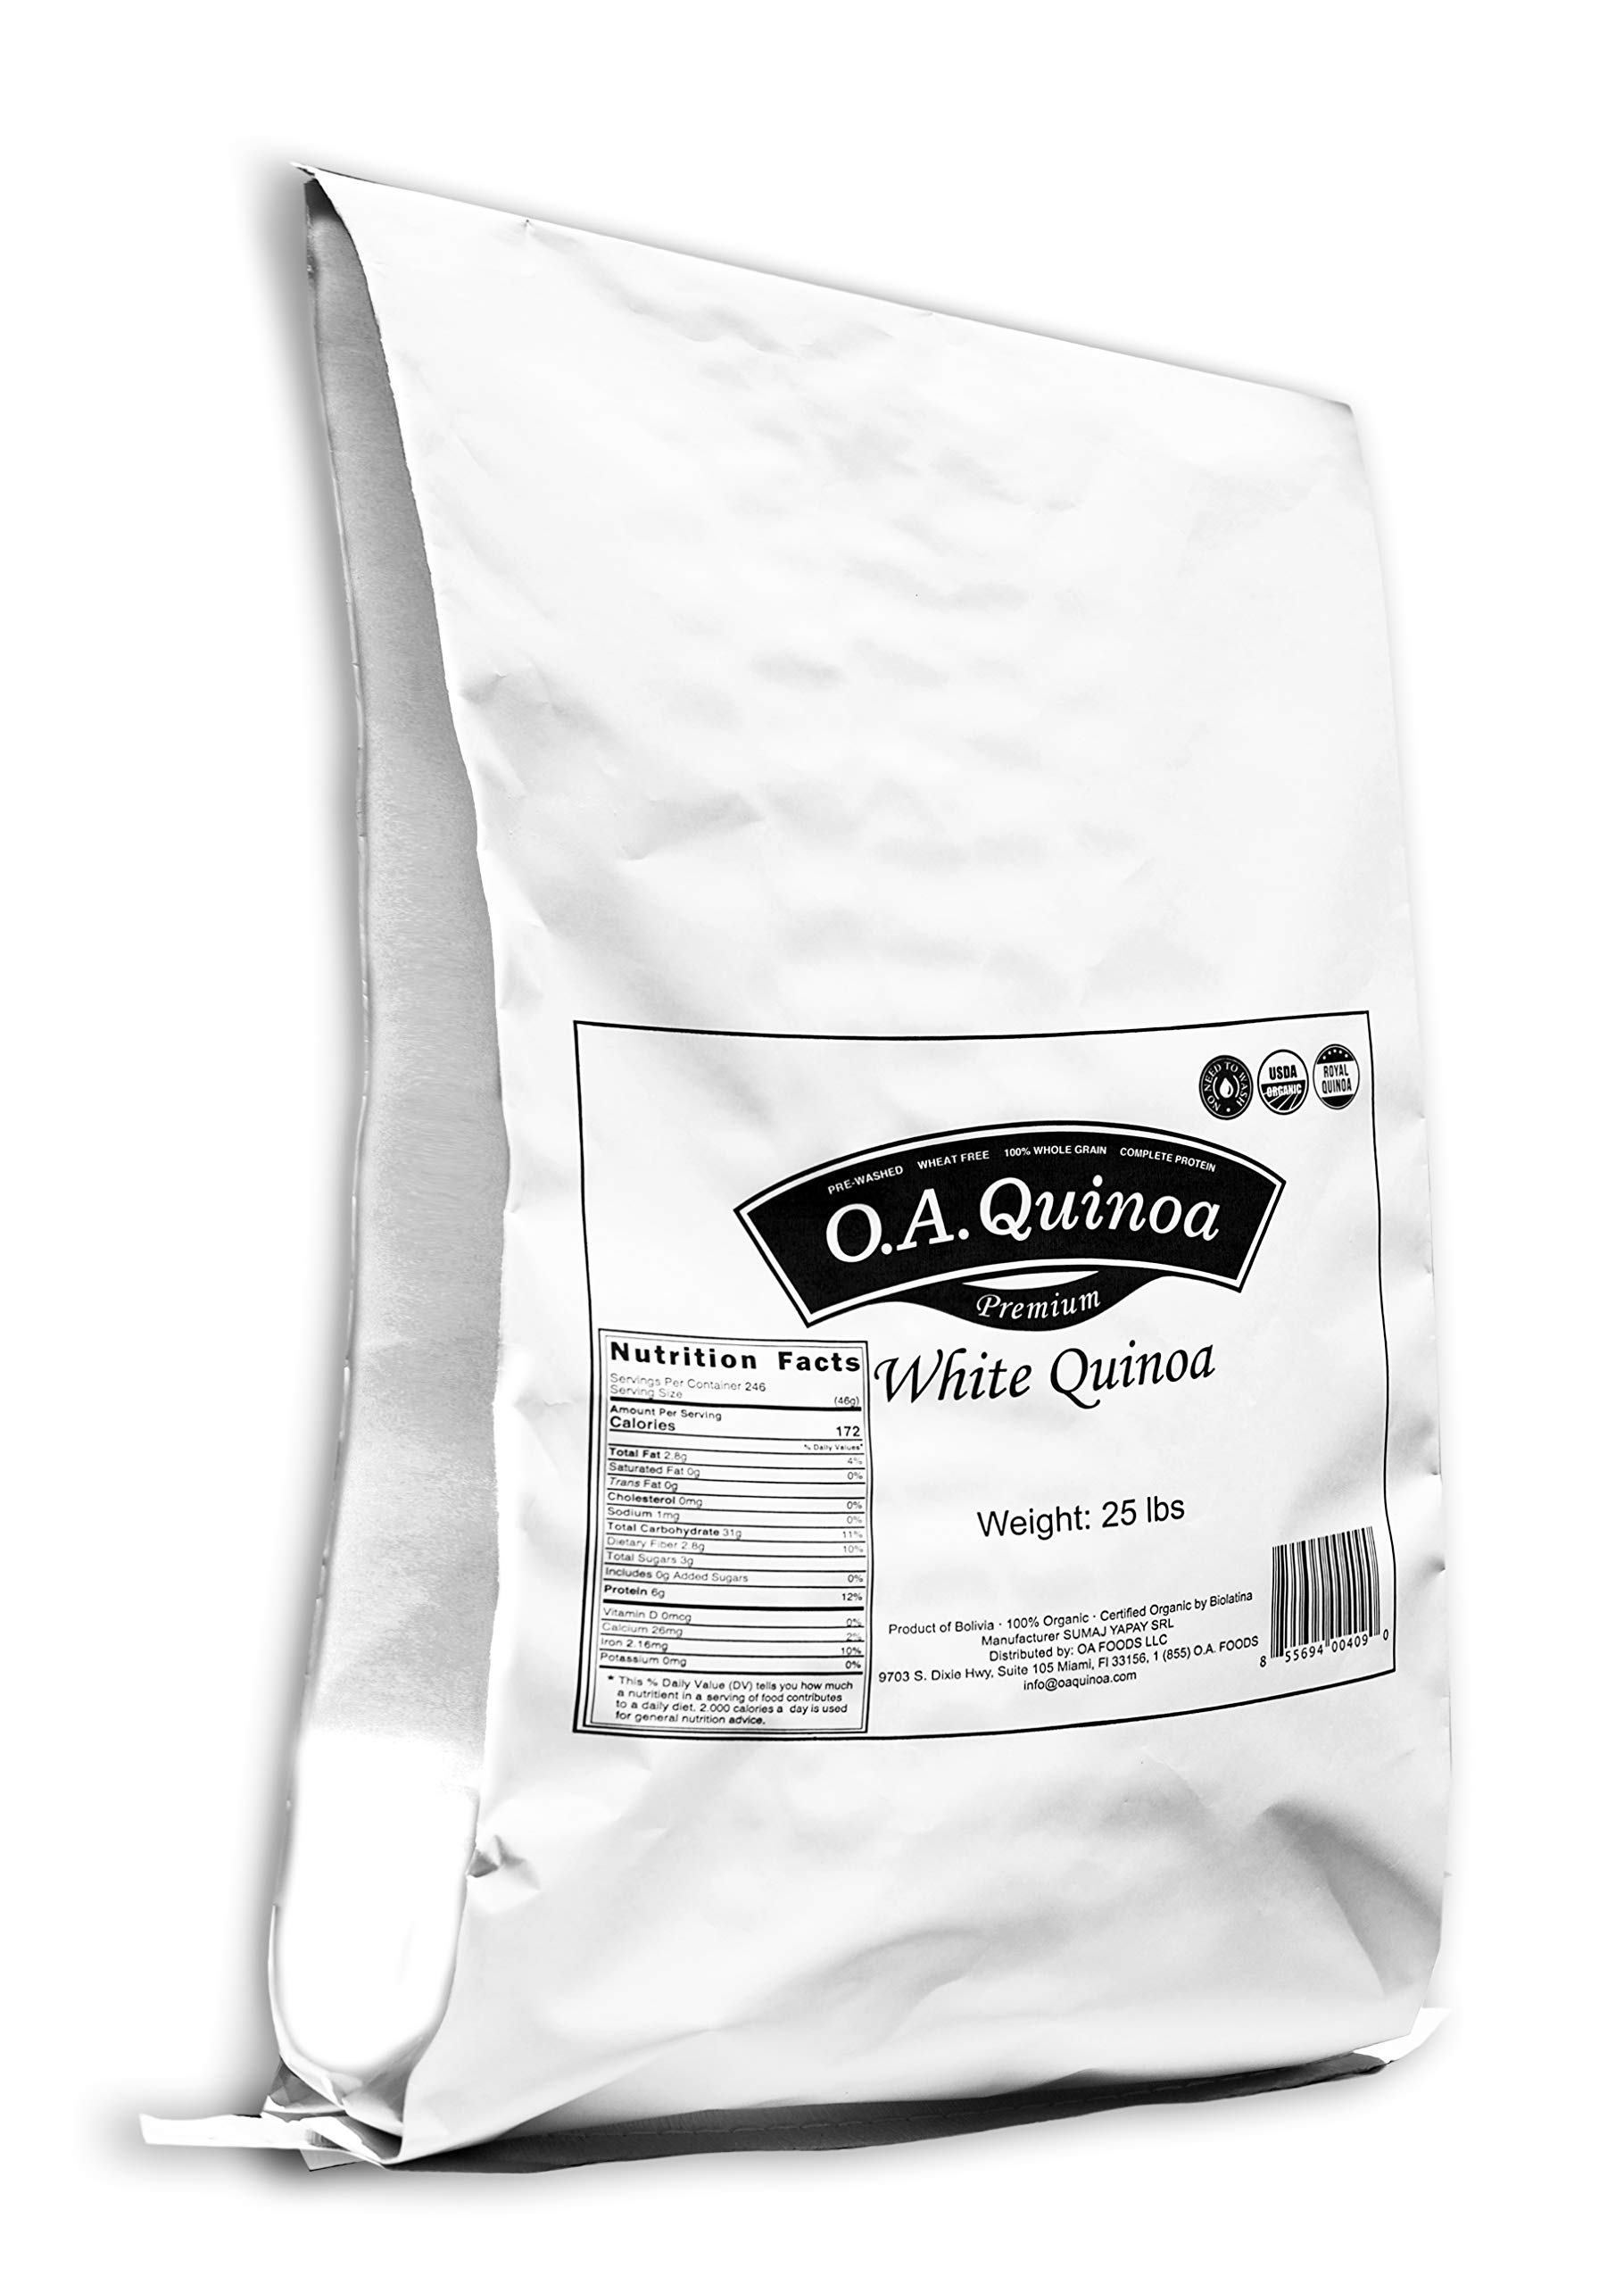 Royal Organic White OA Quinoa (25 Lb Bulk Bag)